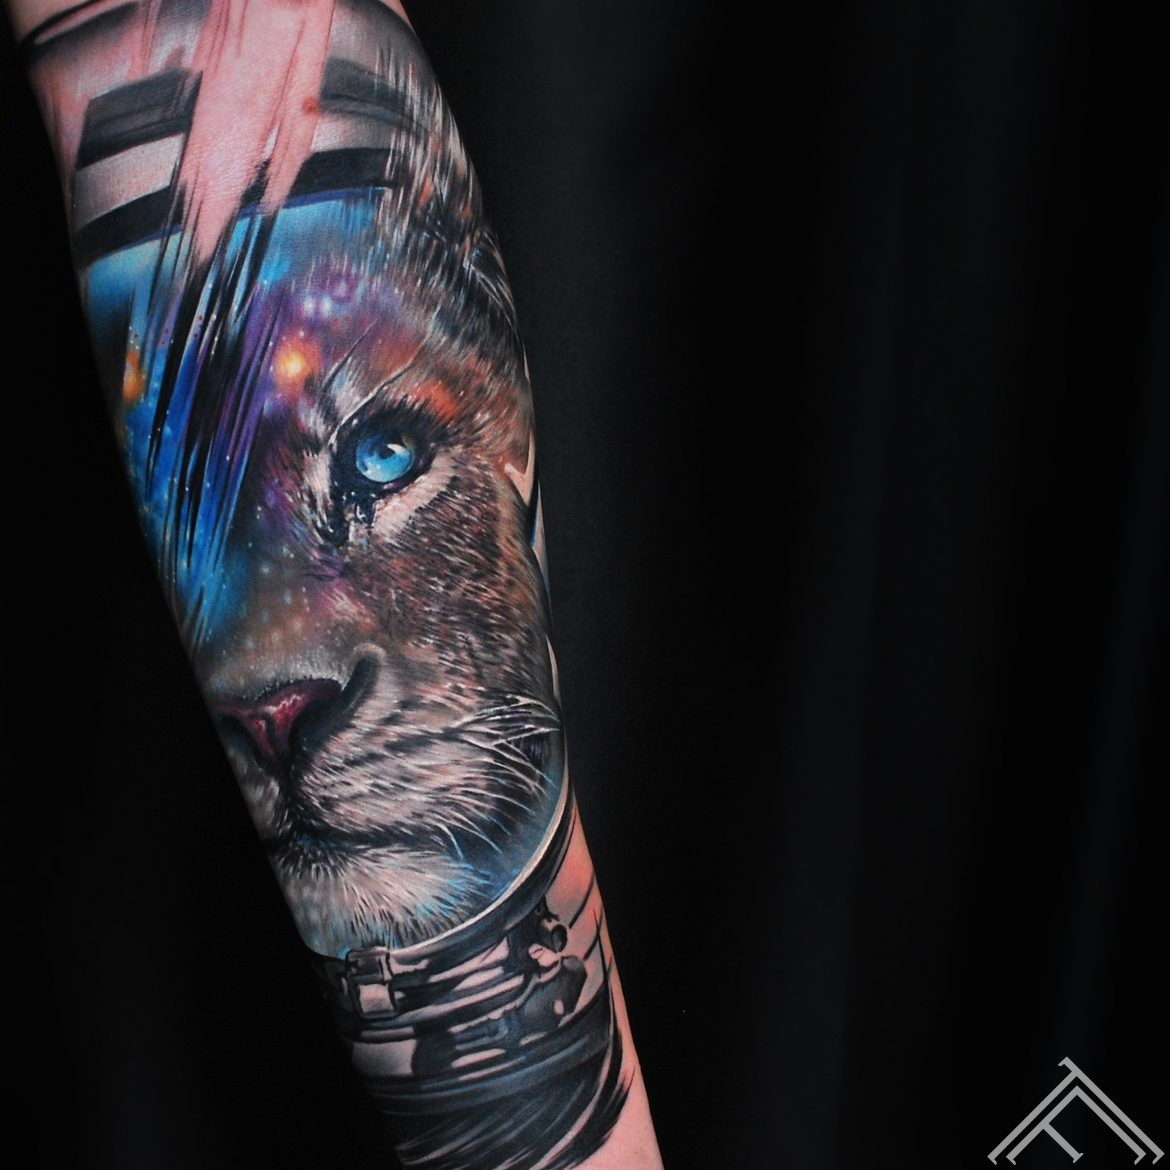 lion-space-cosmoss-tattoo-tetovejums-art-helmet-kosmoss-galaxy-galaktika-stars-zvaigznes-tattoofrequency-lauva-riga-marispavlo